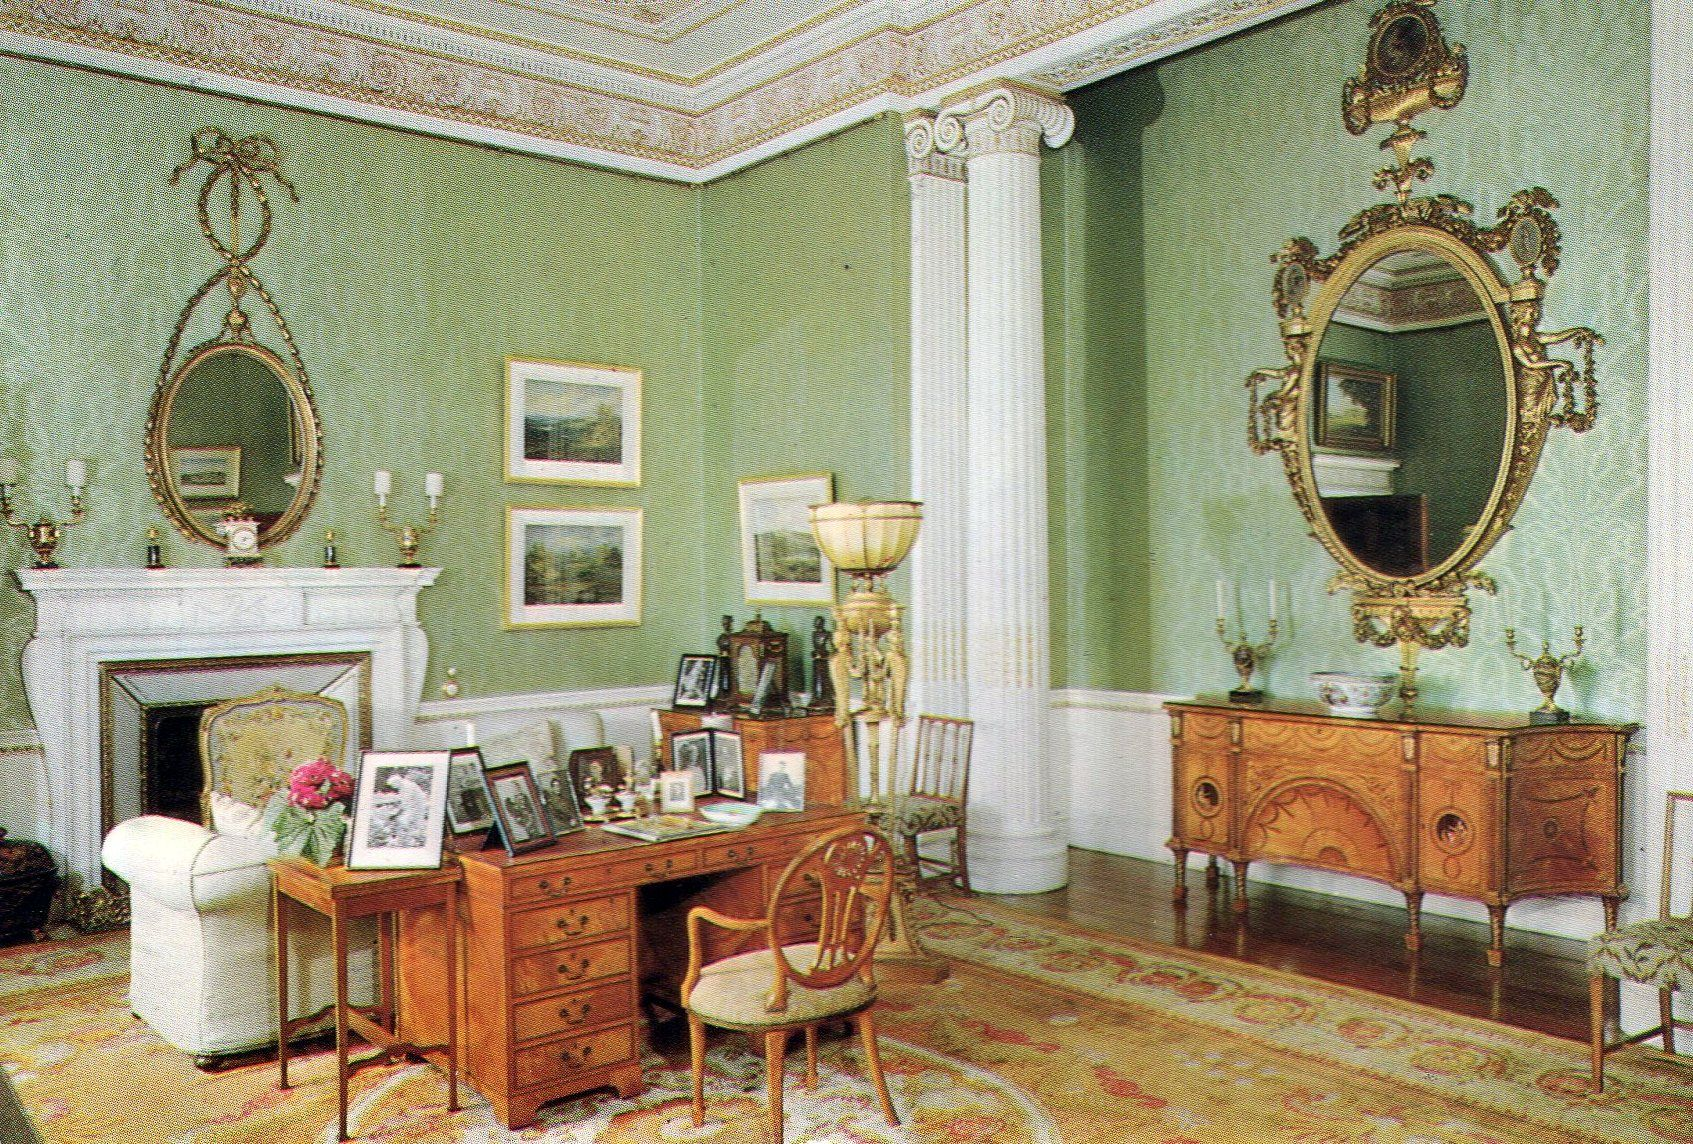 The Princess Royalu0027s Sitting Room, Harewood House, Harewood, Yorkshire.  Intended As A